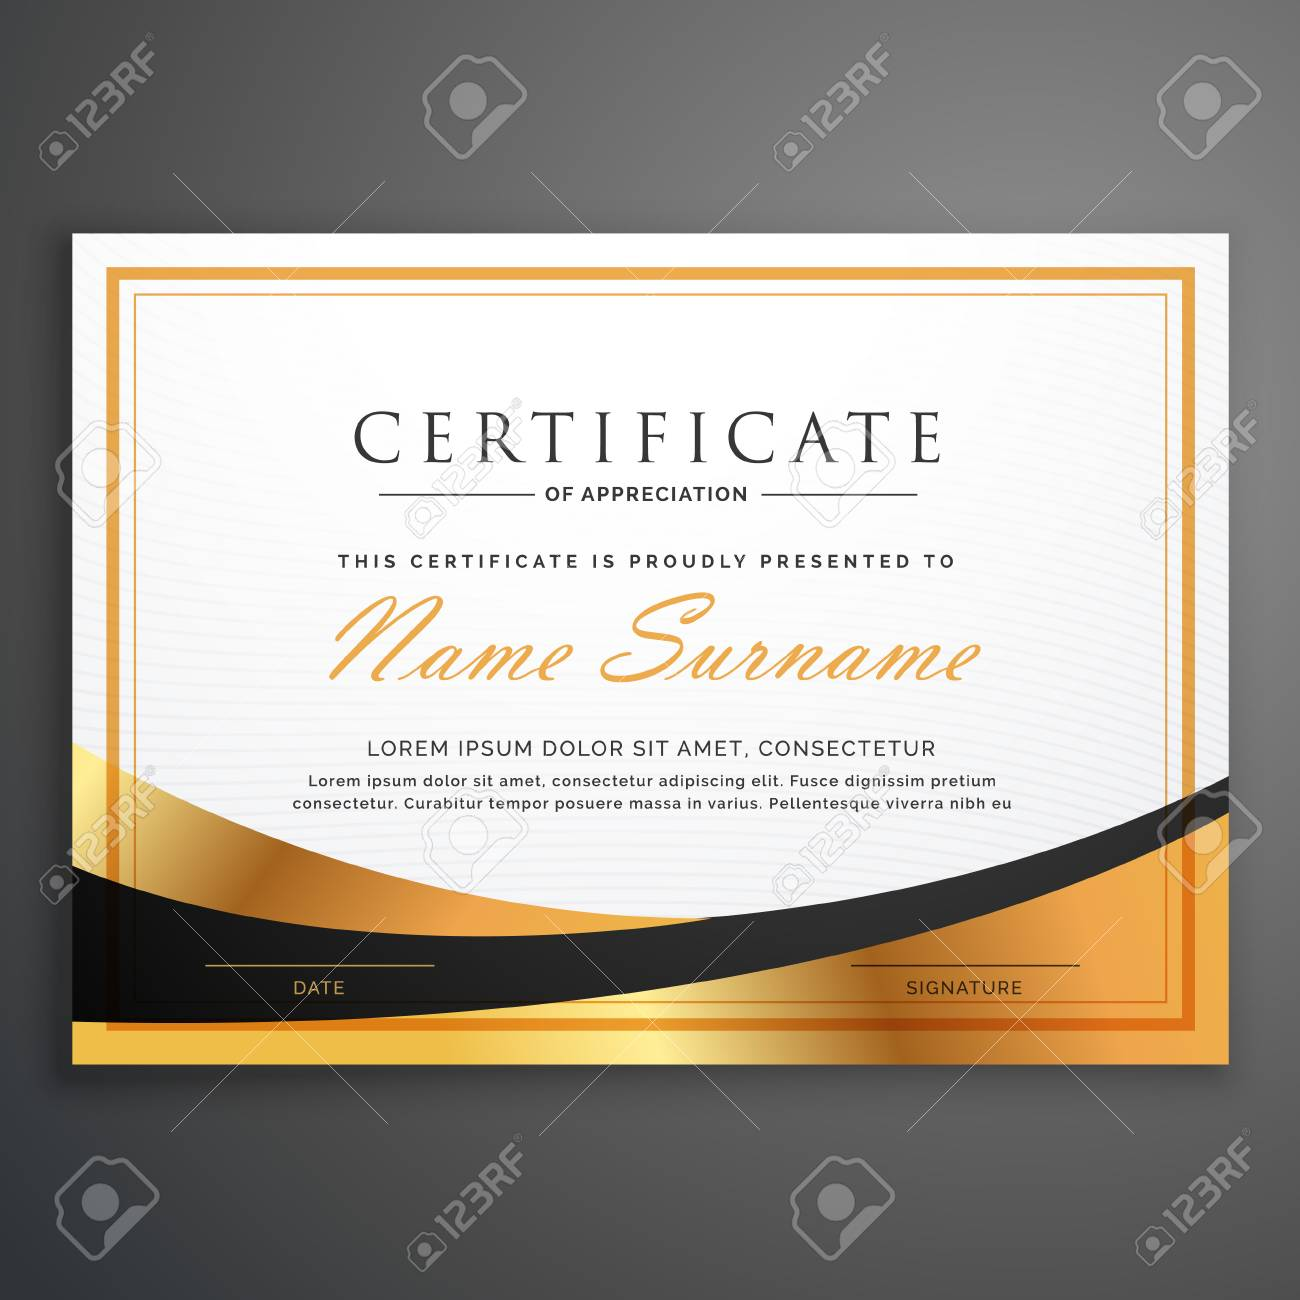 certificate template deisgn with golden wave - 66228237